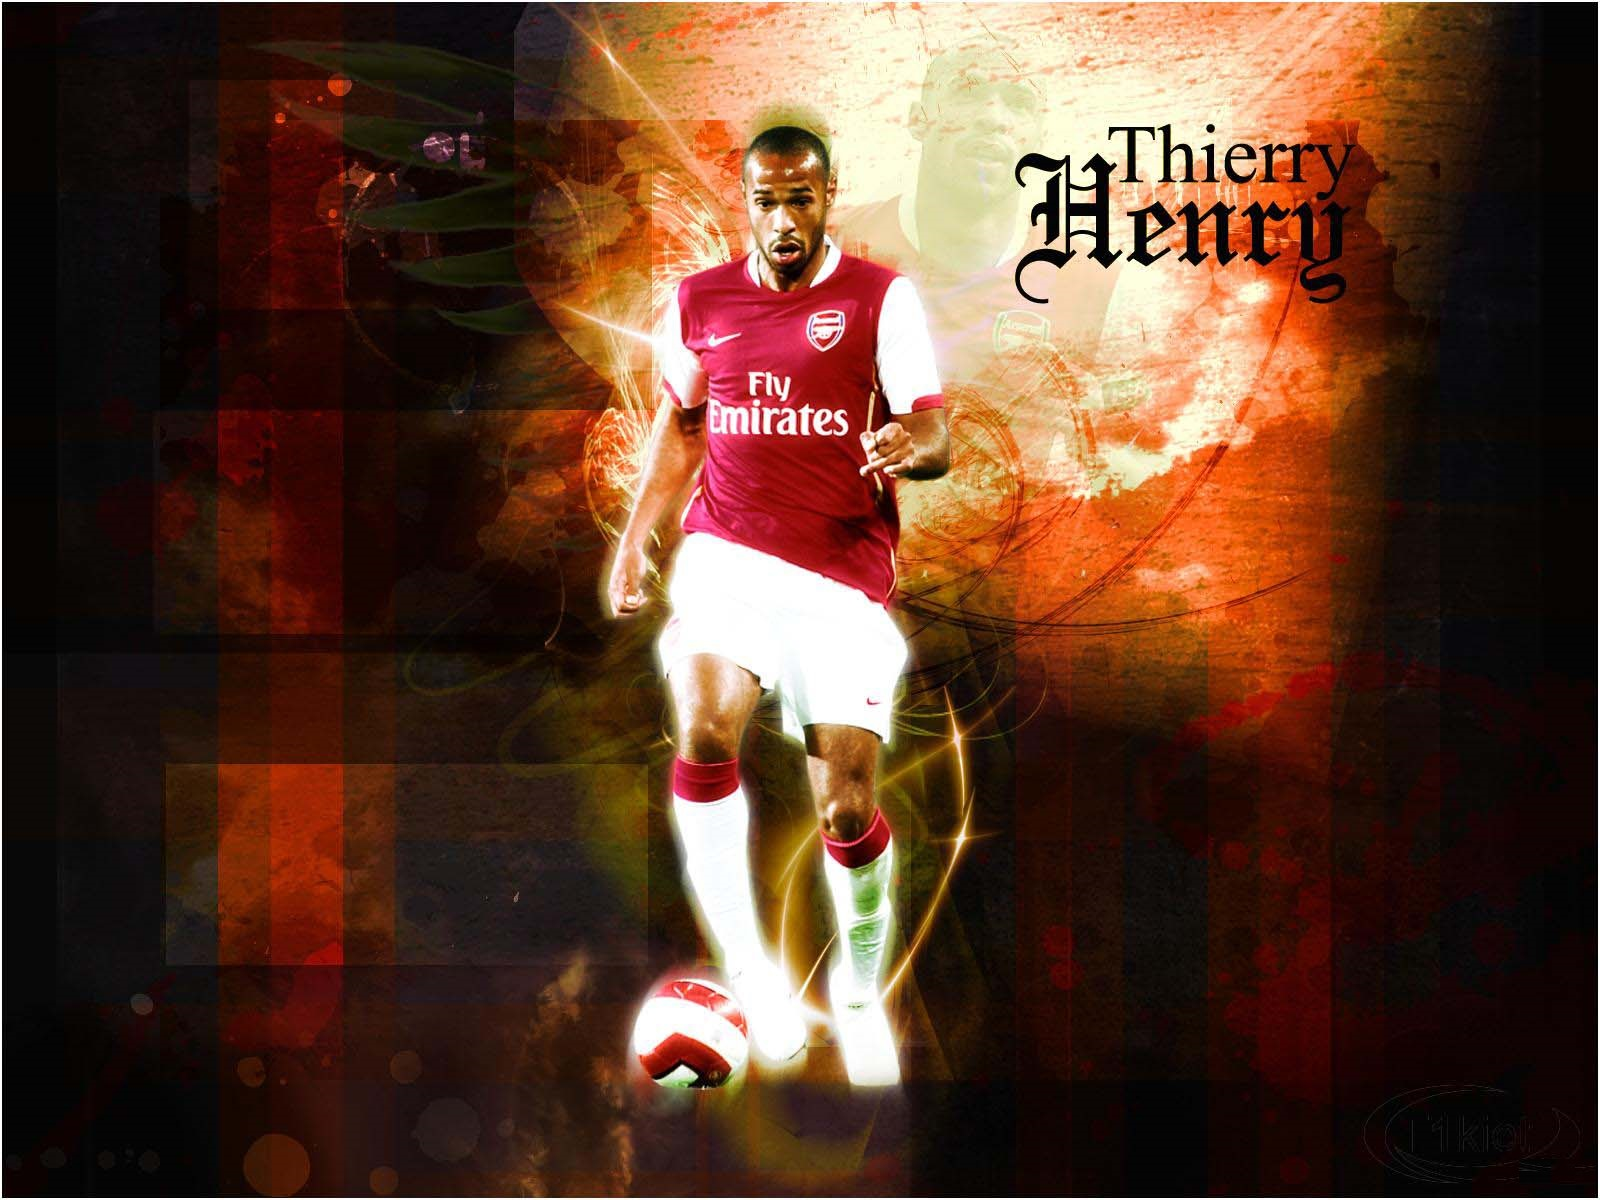 Thierry Henry Photos & Images